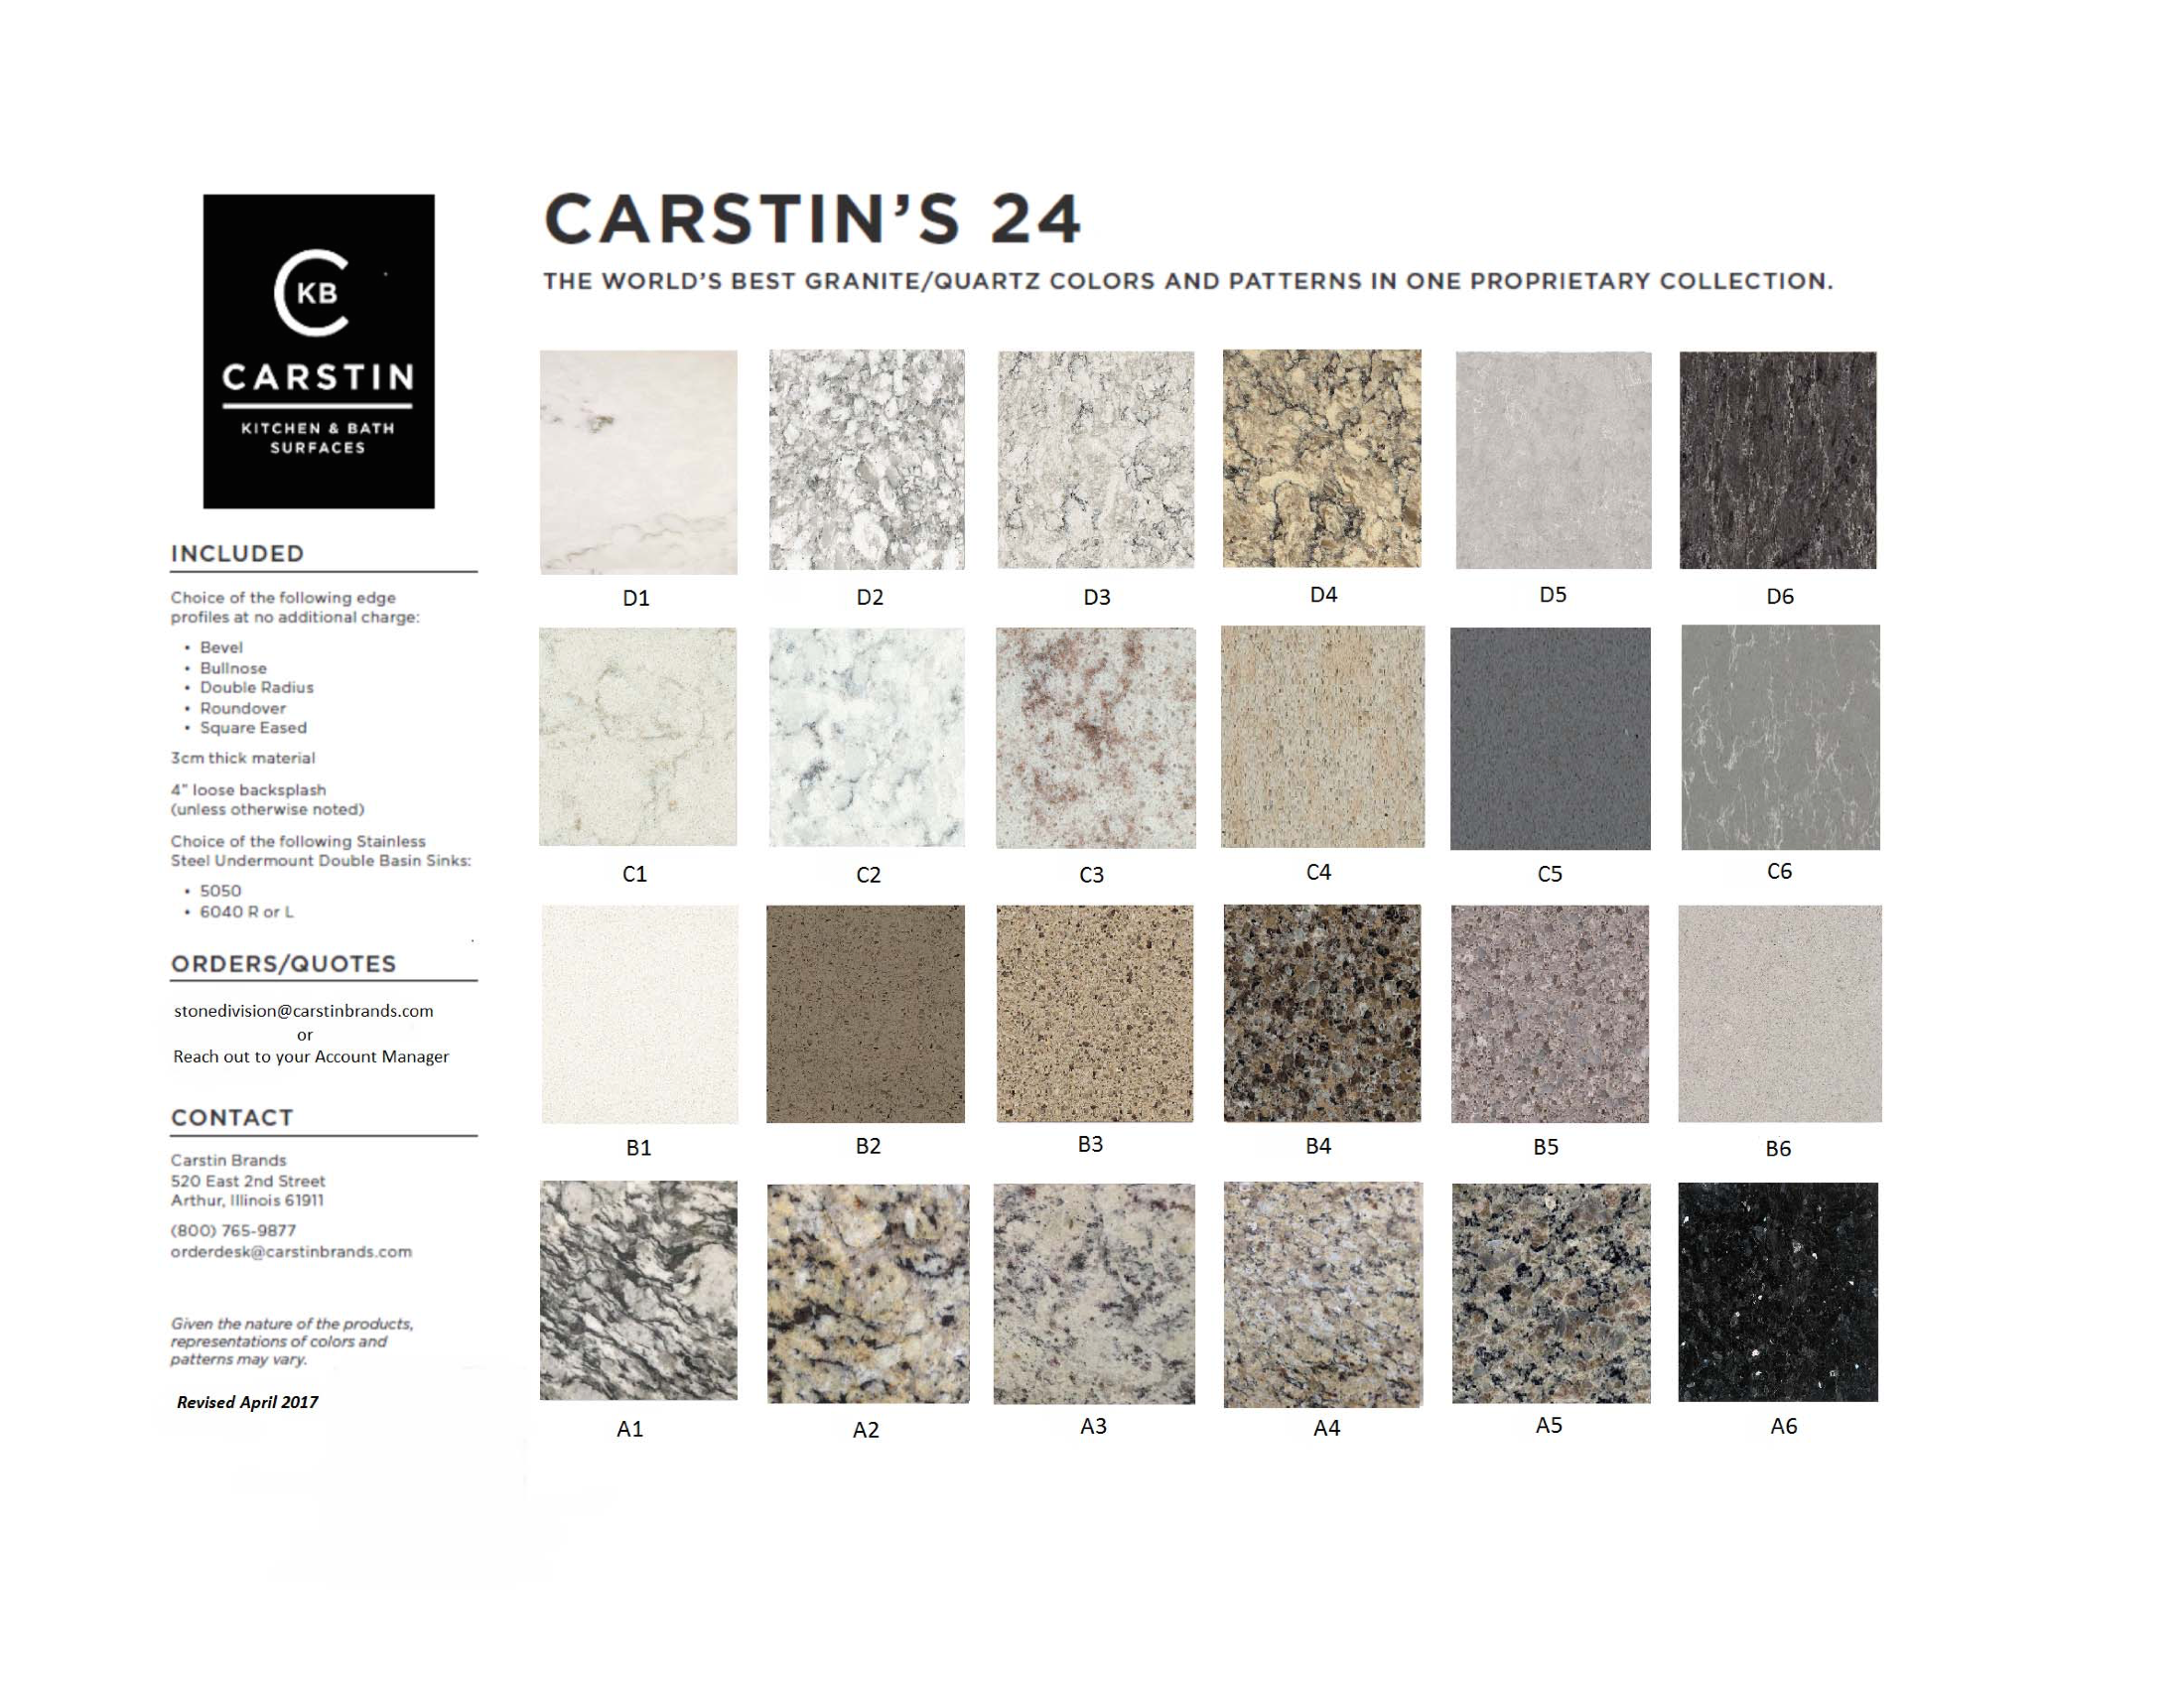 Carstin 24 marketing flyer